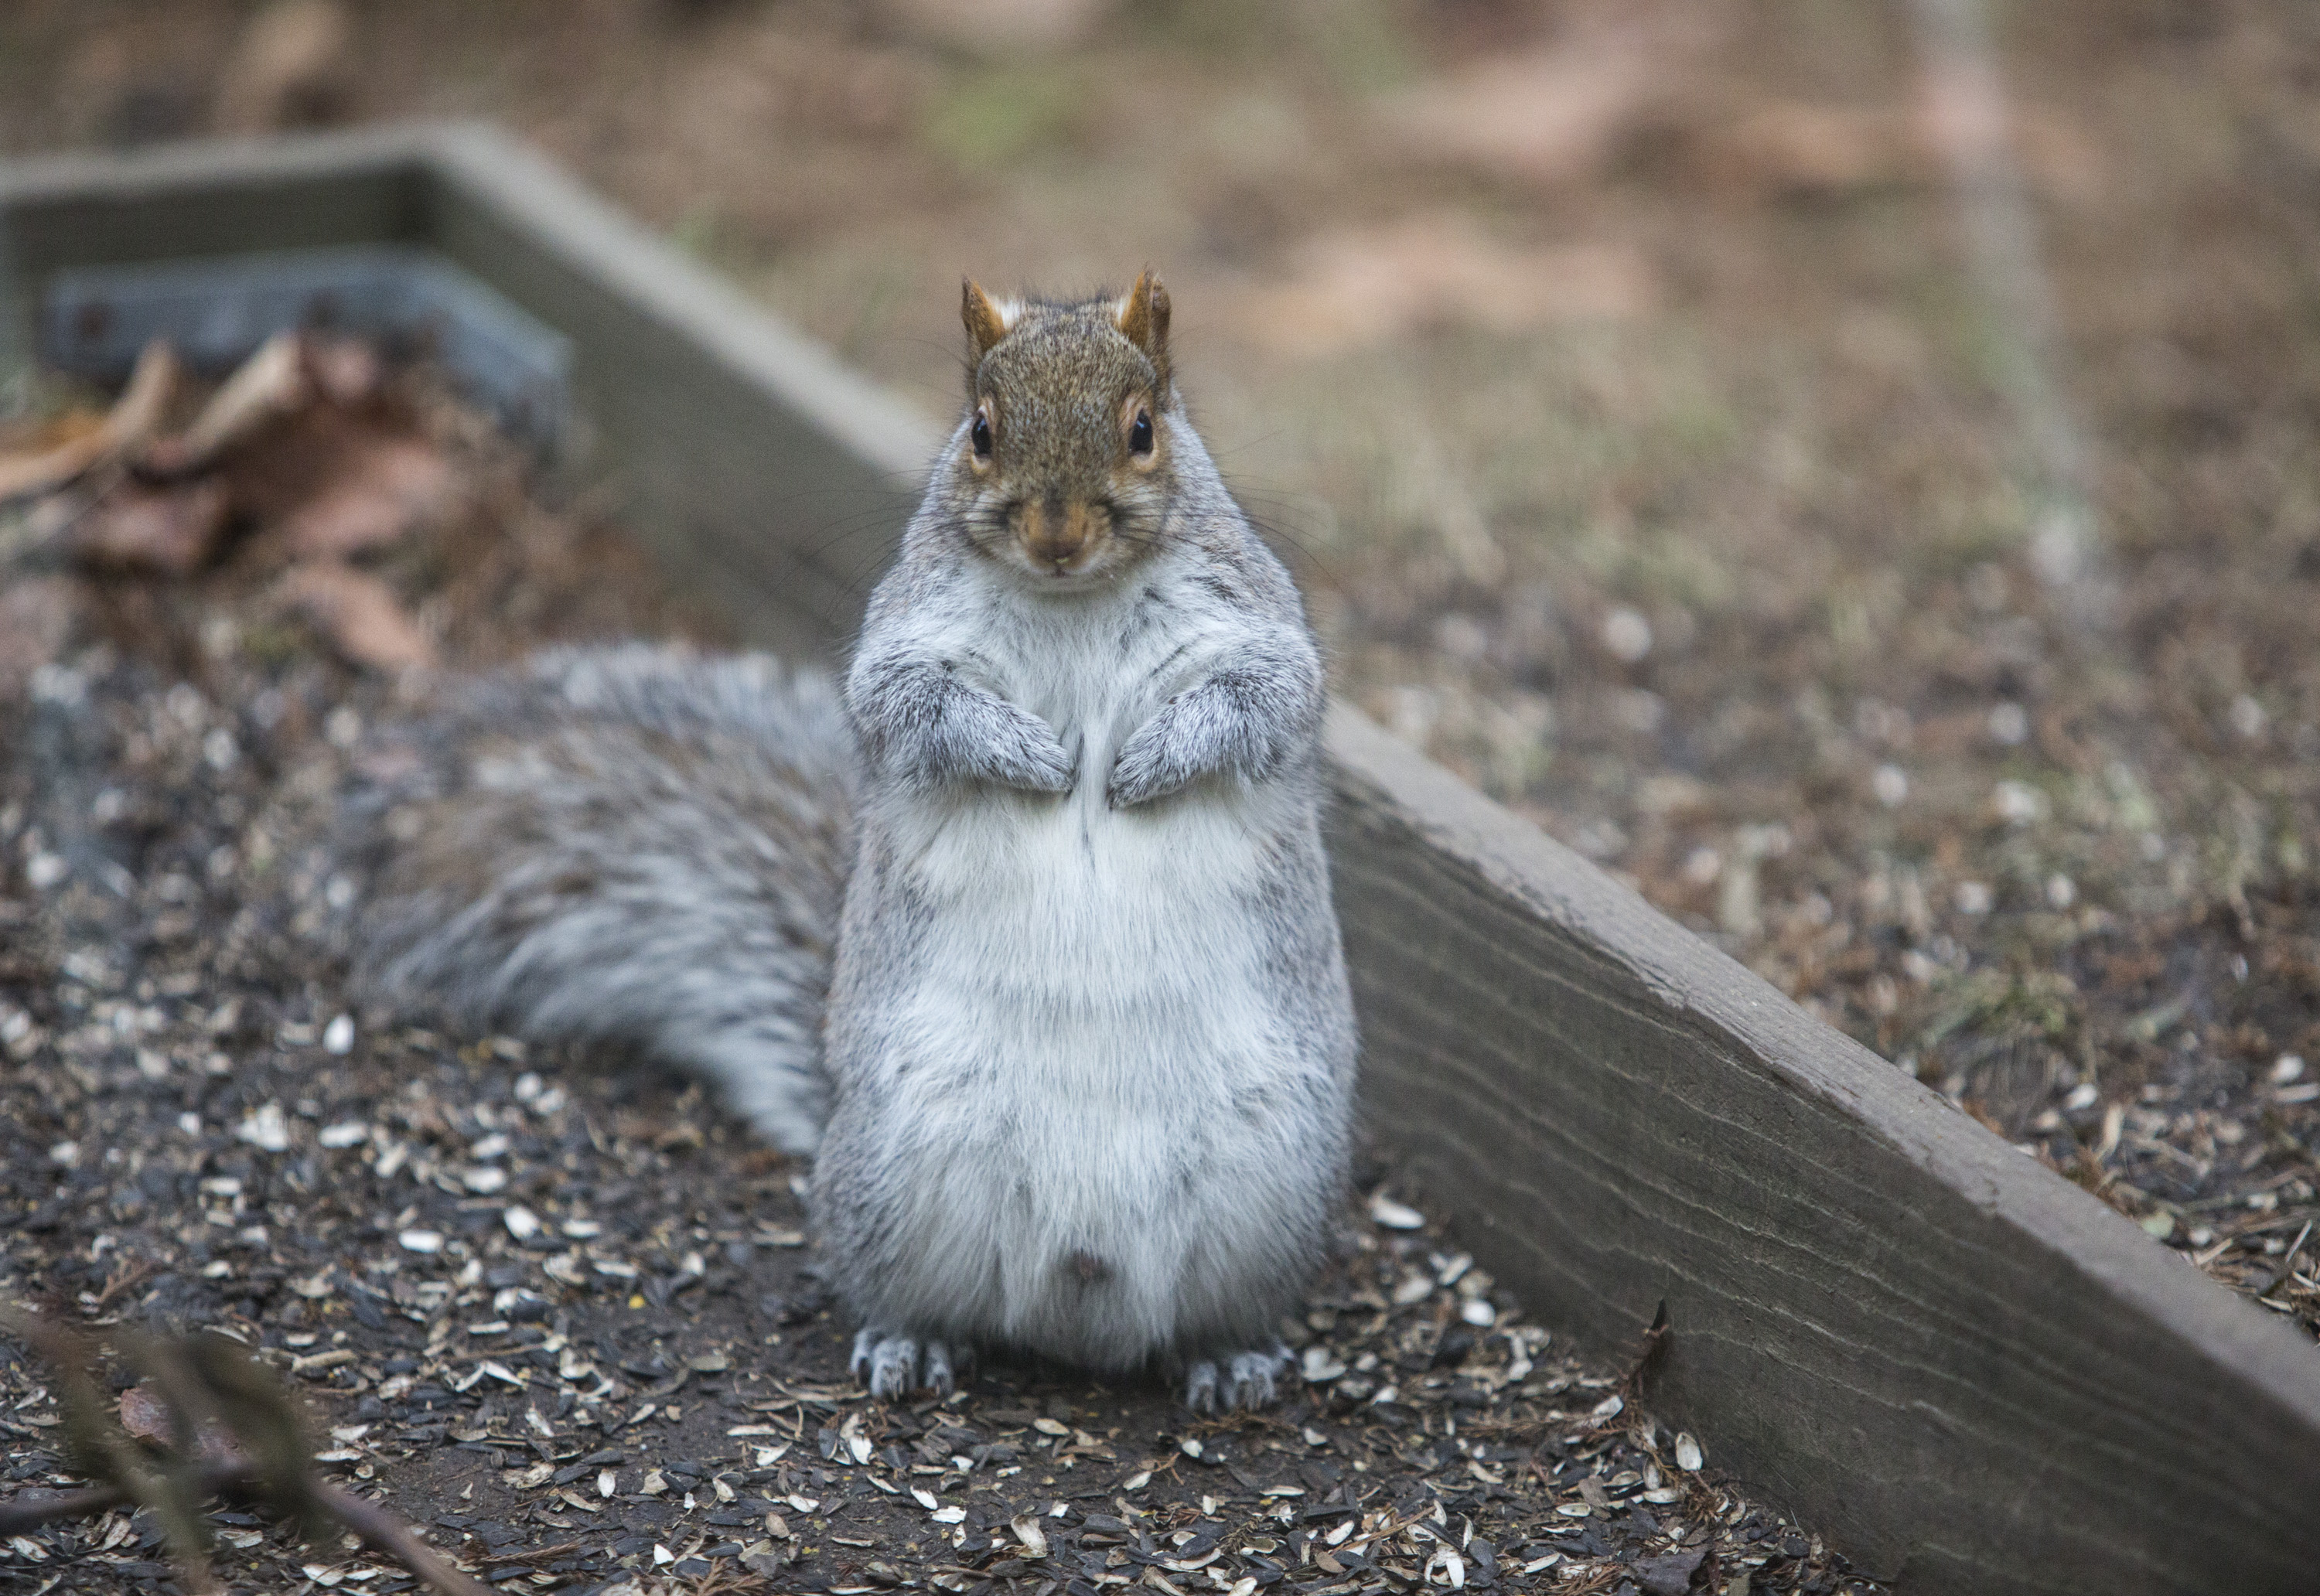 How to Attract Squirrels pictures